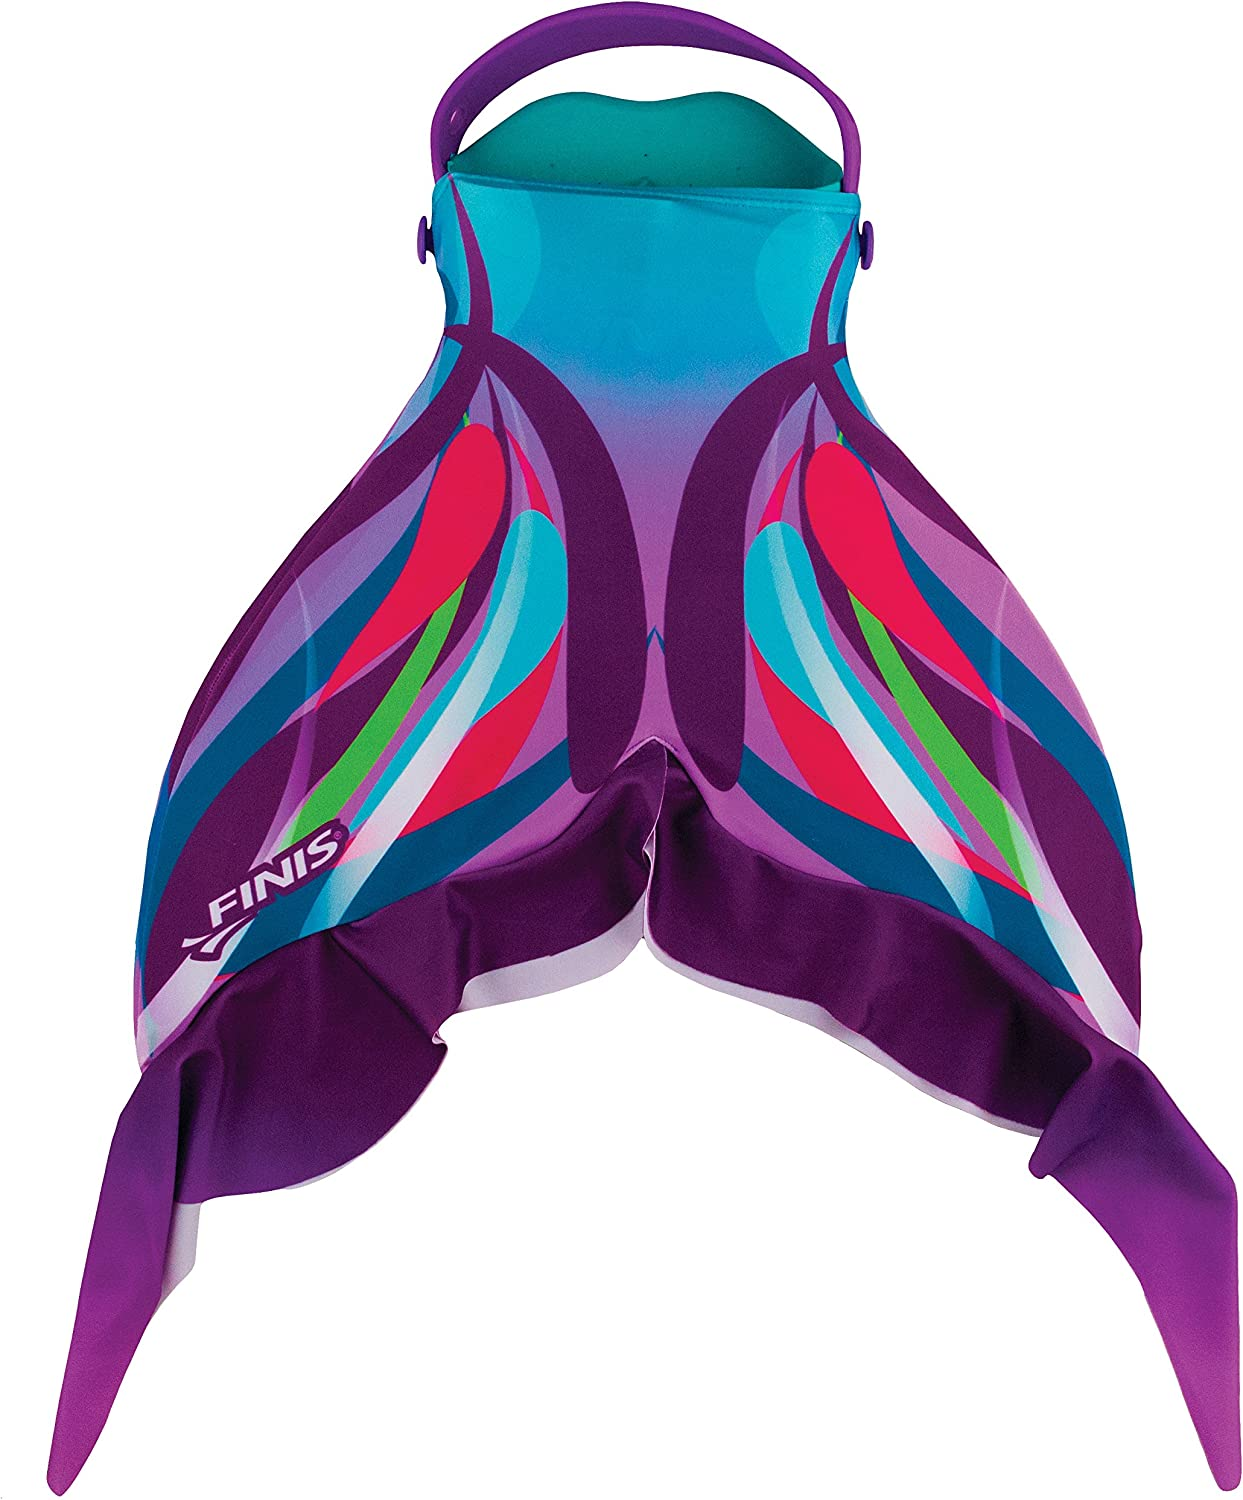 FINIS Free shipping Mermaid Fin Cover Swim Flippers Clearance SALE! Limited time! Monofin for